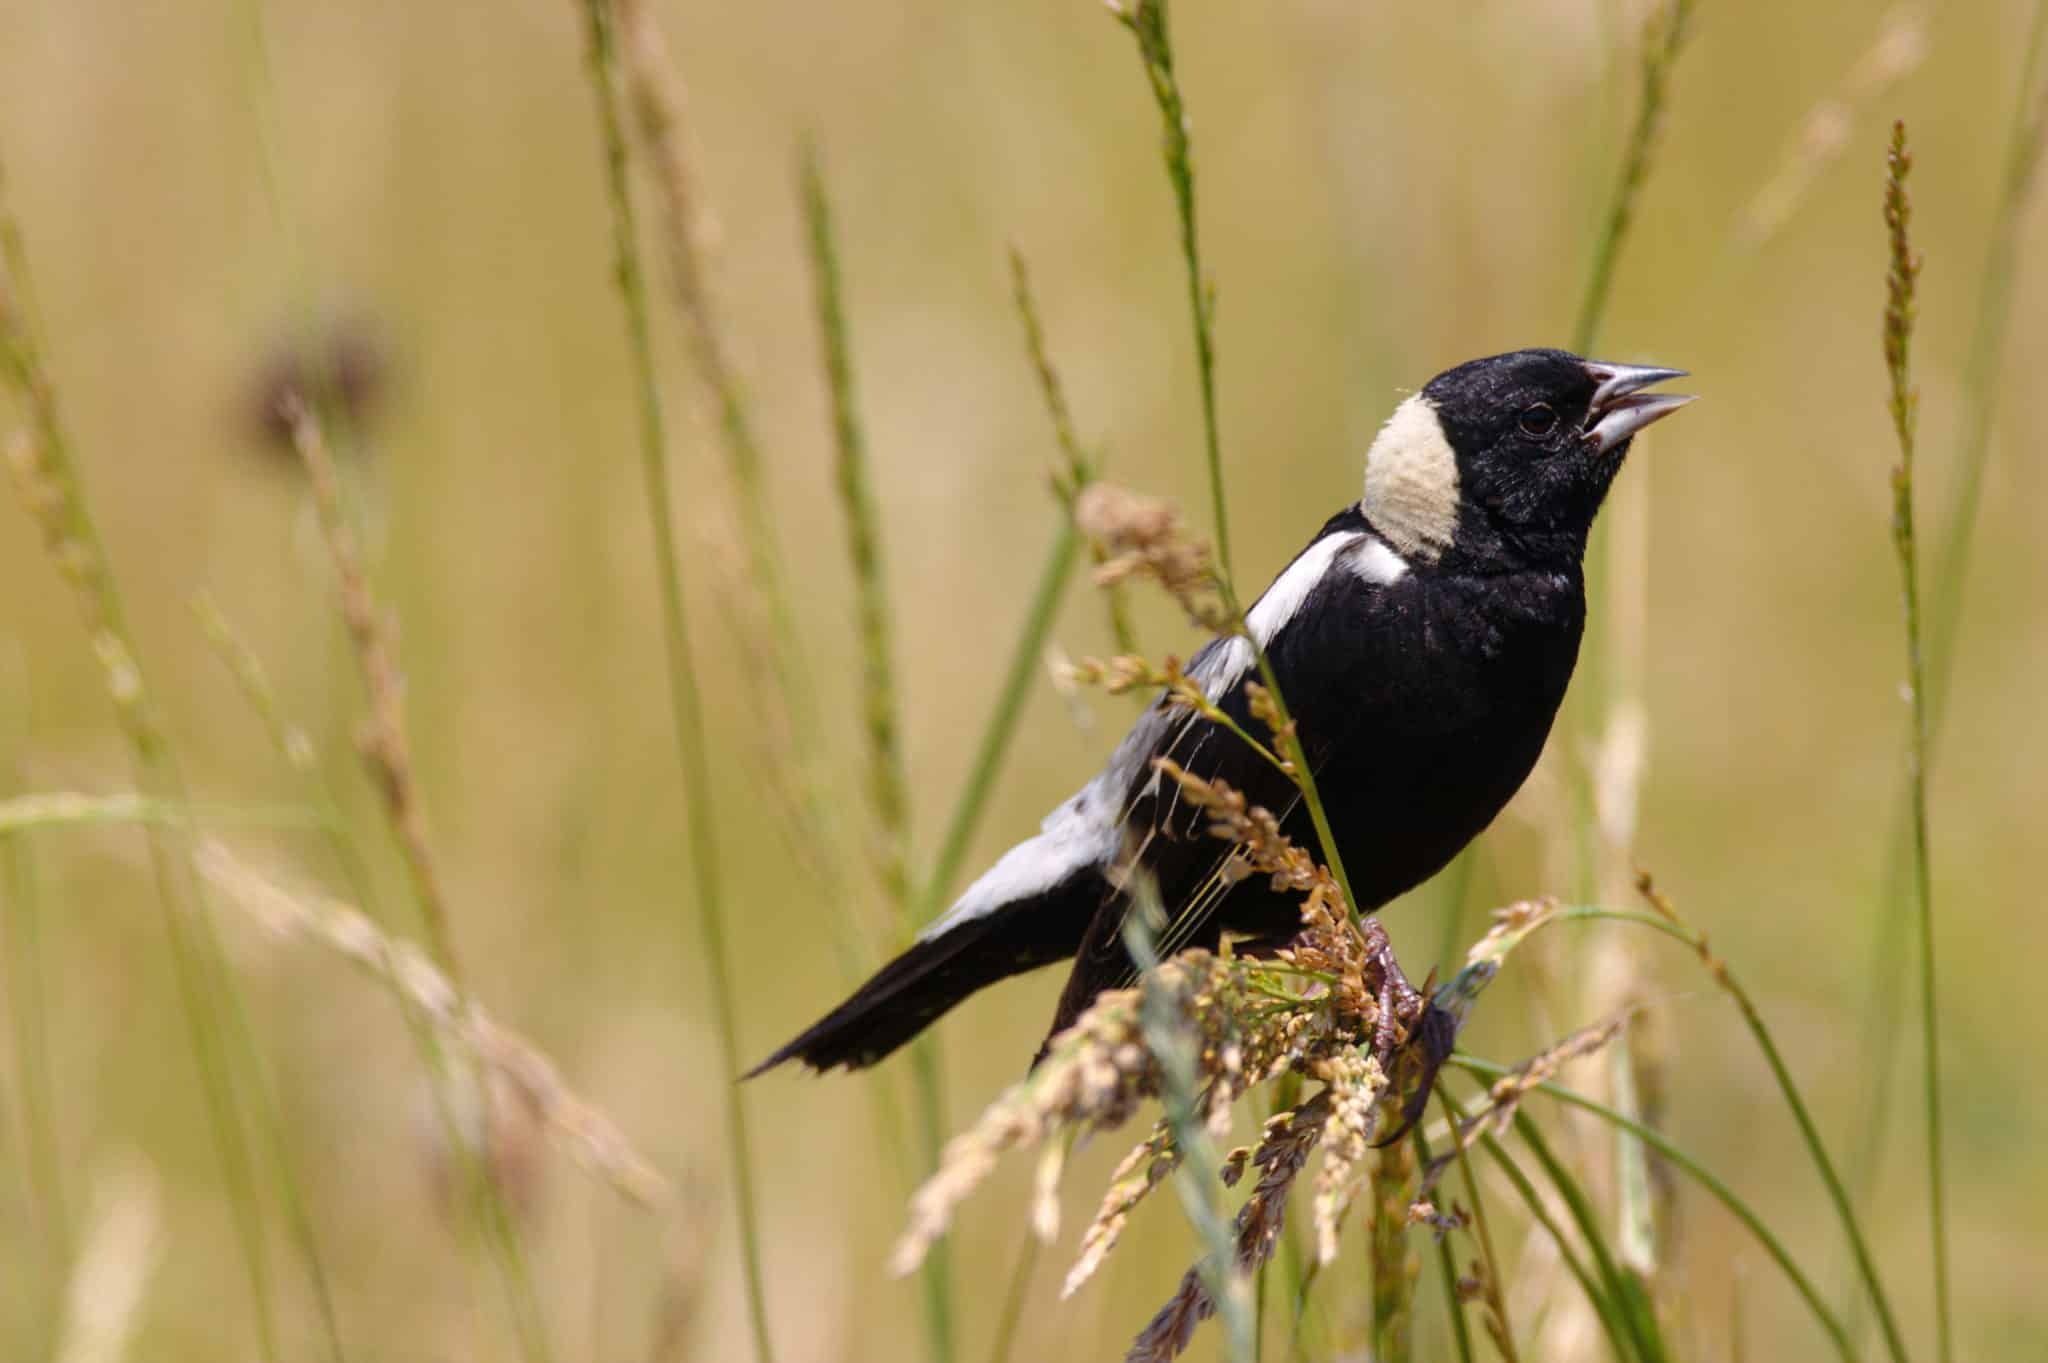 Bobolink perched in the tall grass